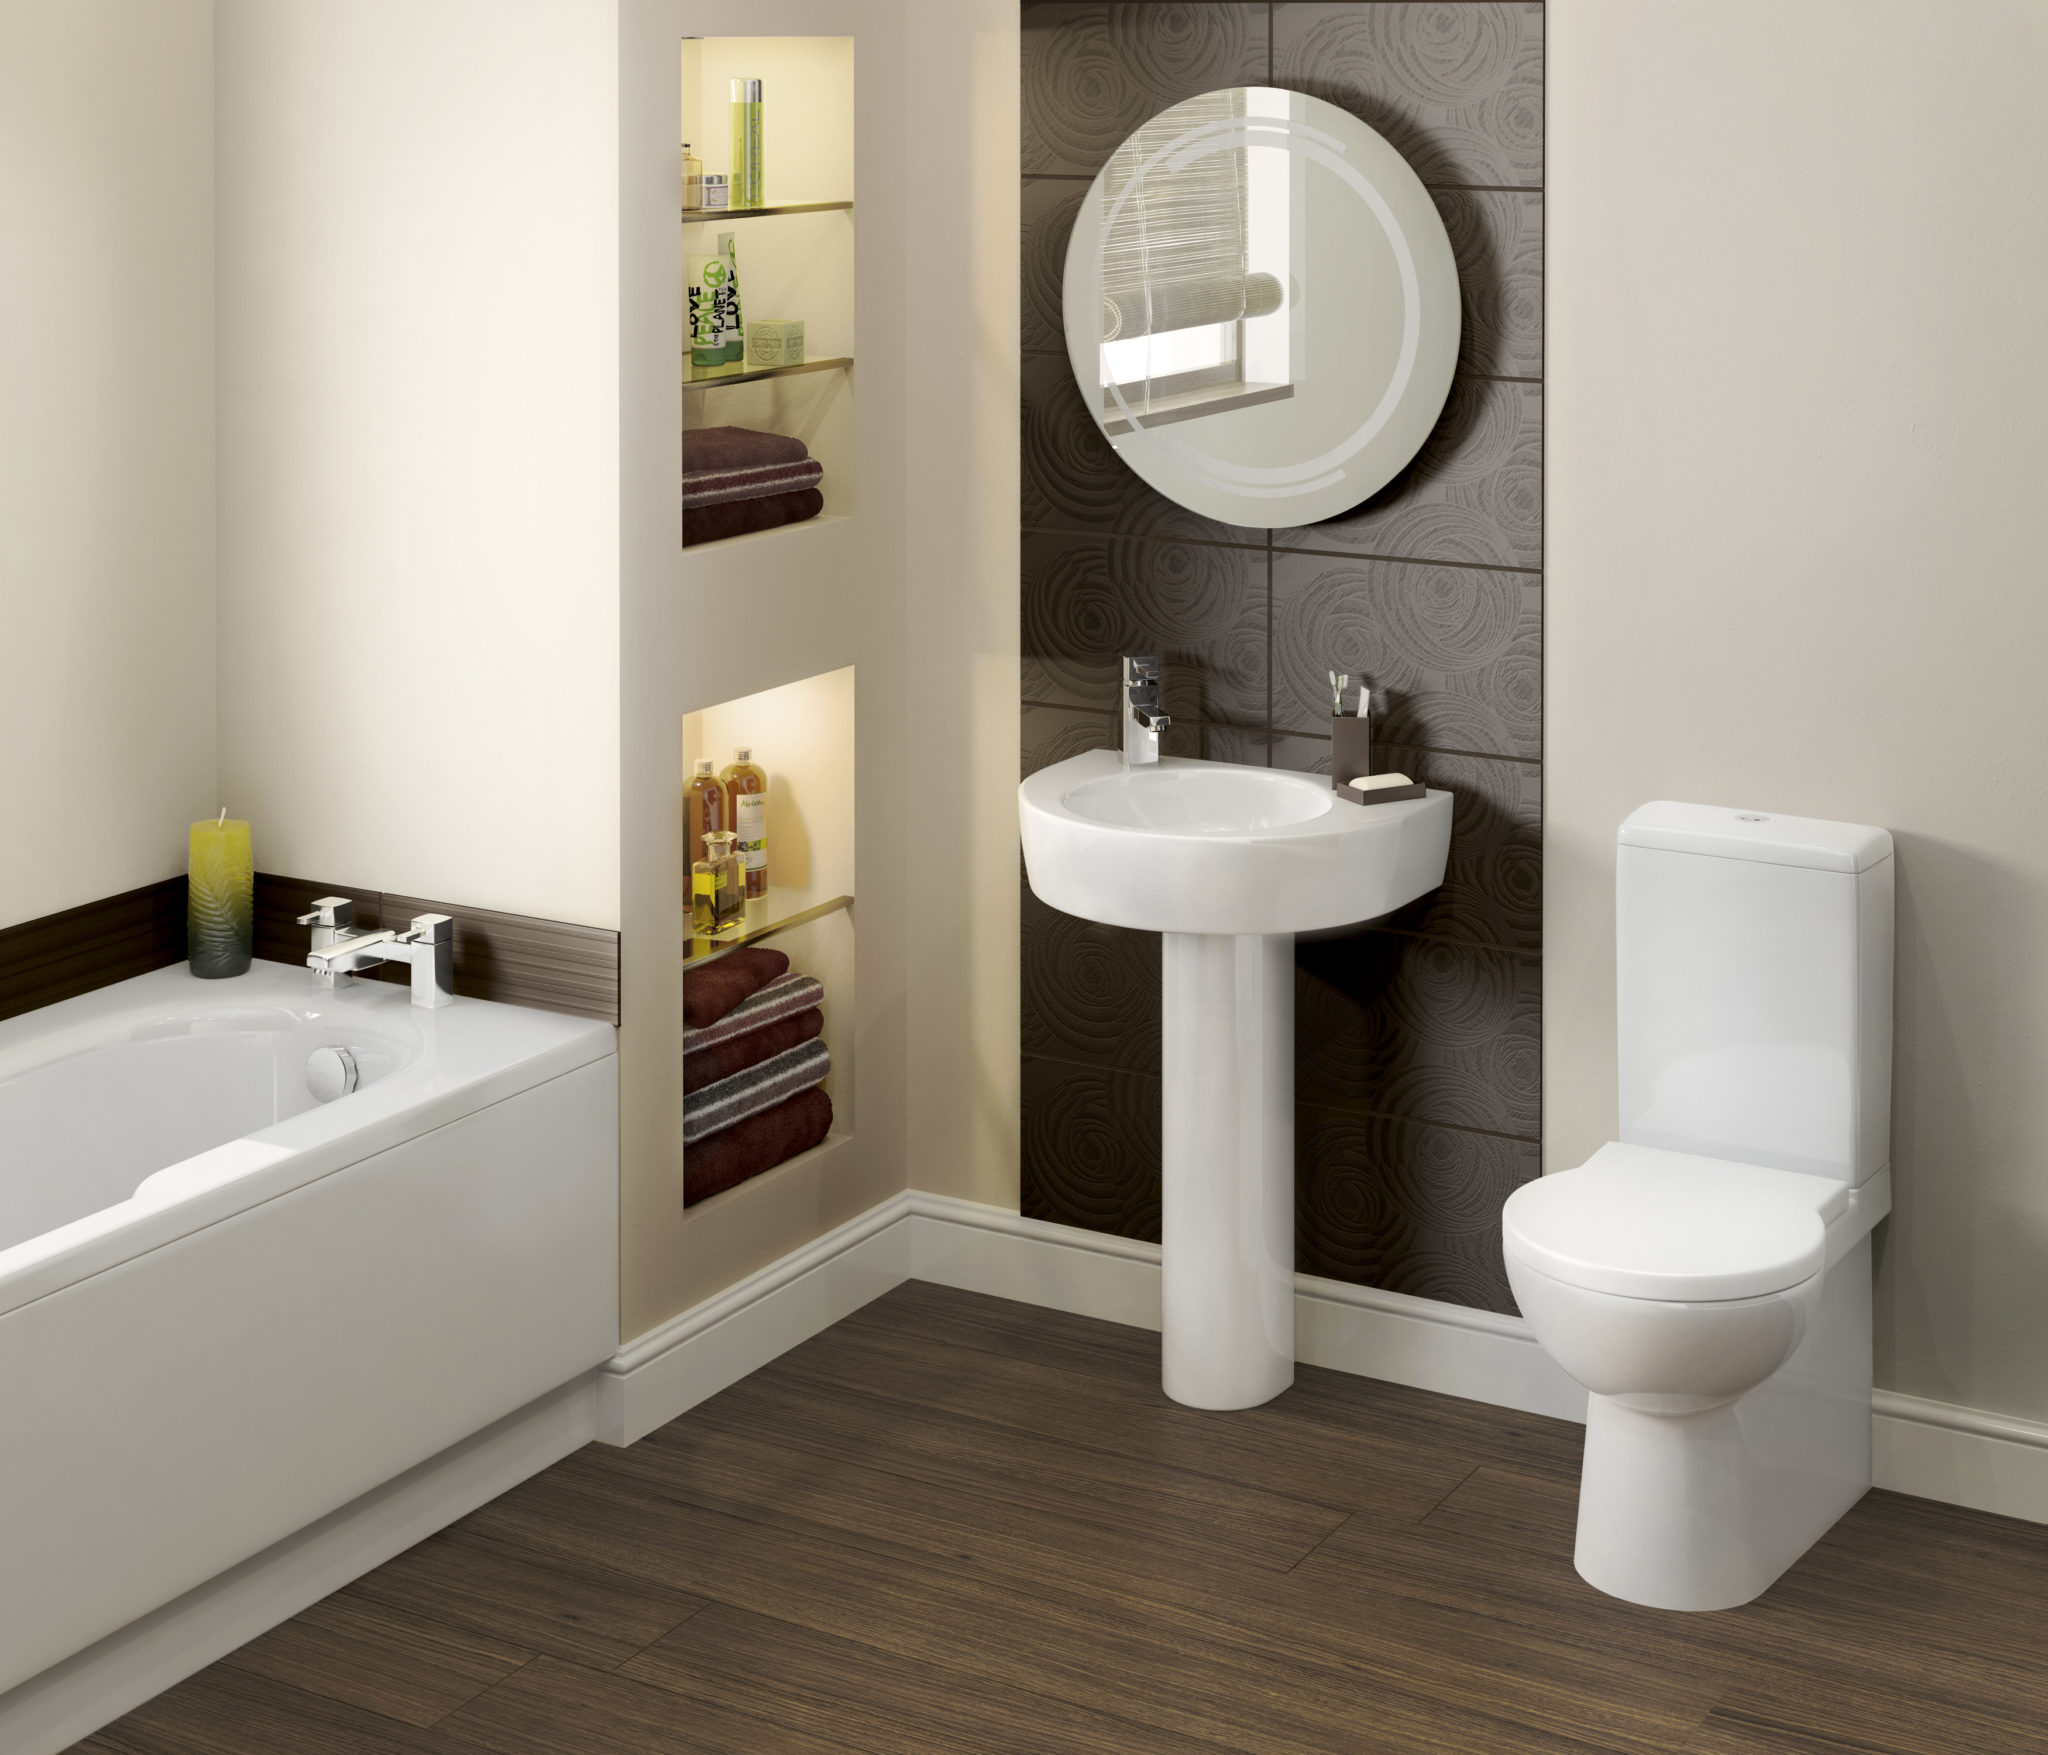 Choosing a plumbing contractor for your bathroom remodel for I need to redo my bathroom